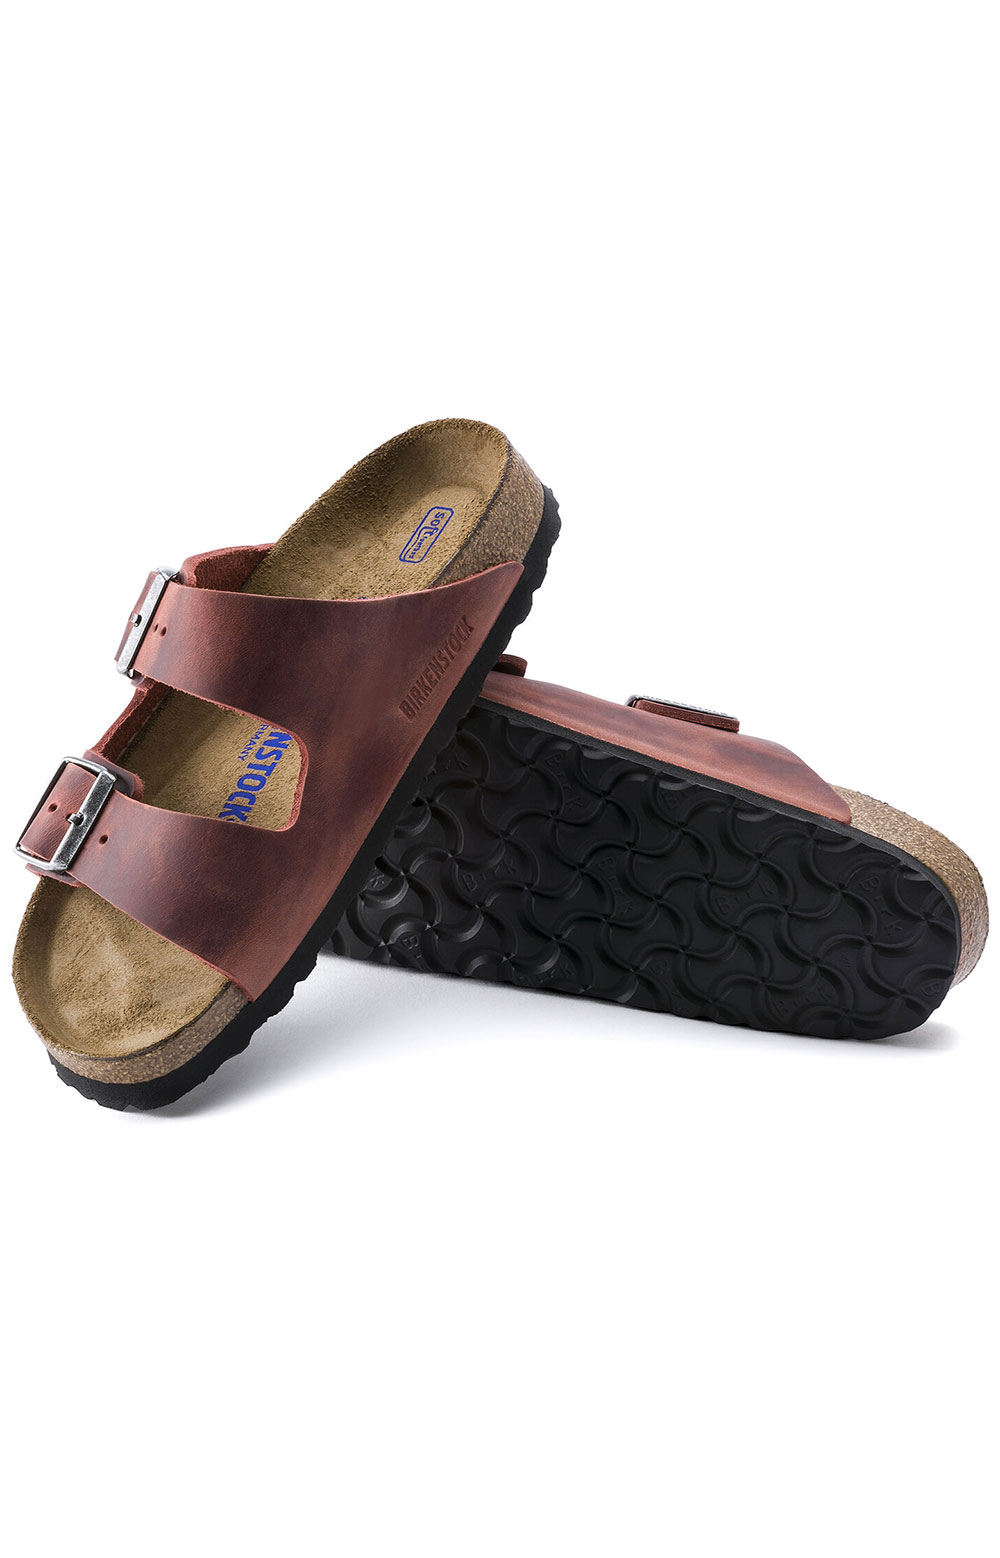 (1015545) Arizona Soft Footbed Sandals - Earth Red 5